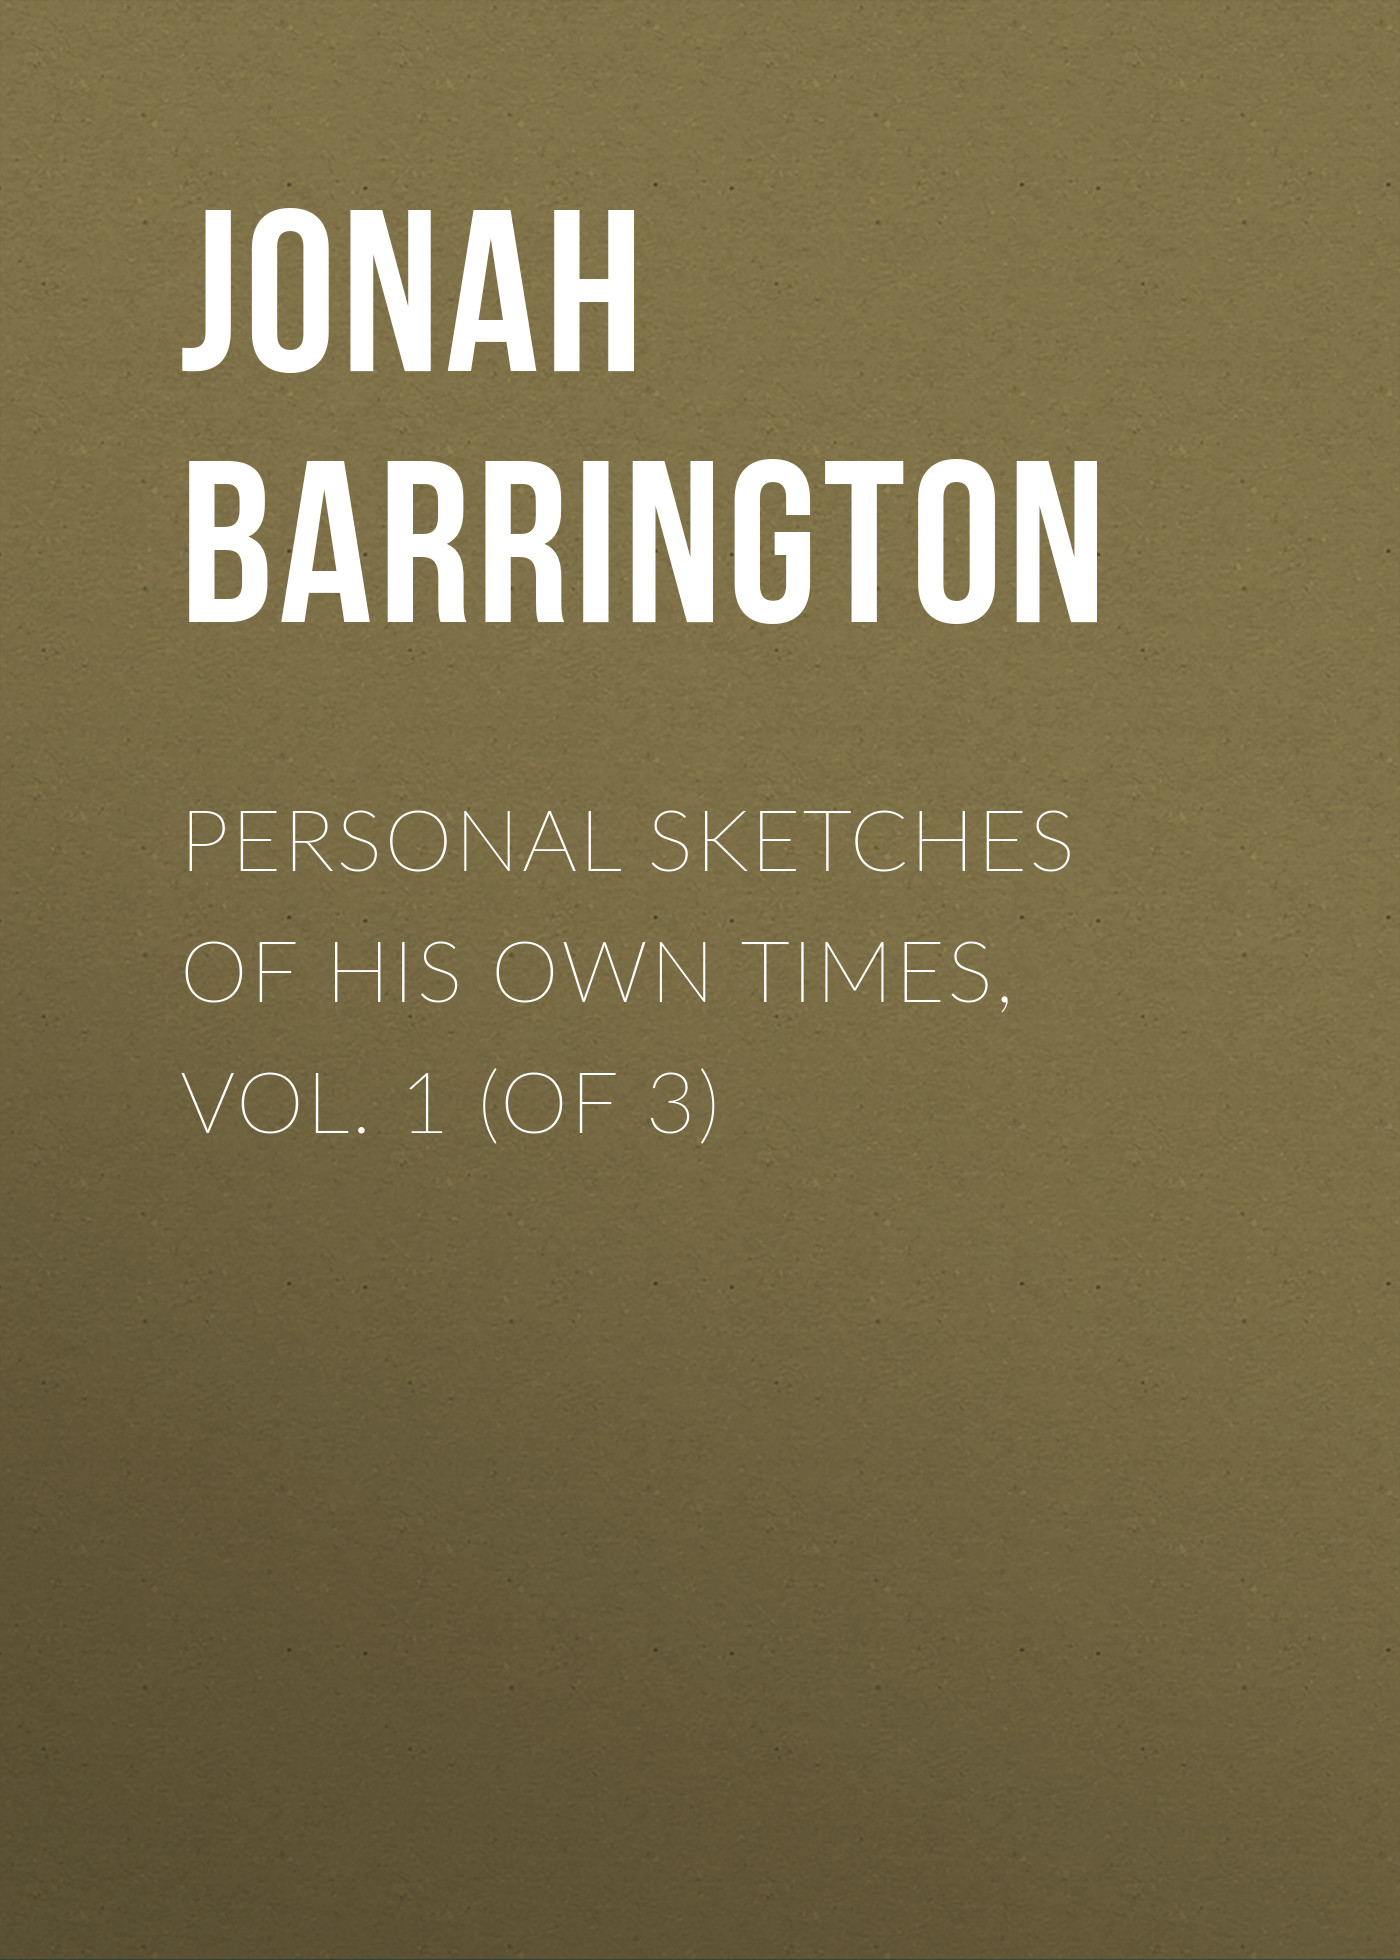 Jonah Barrington Personal Sketches of His Own Times, Vol. 1 (of 3) jonah barrington personal sketches of his own times vol 2 of 3